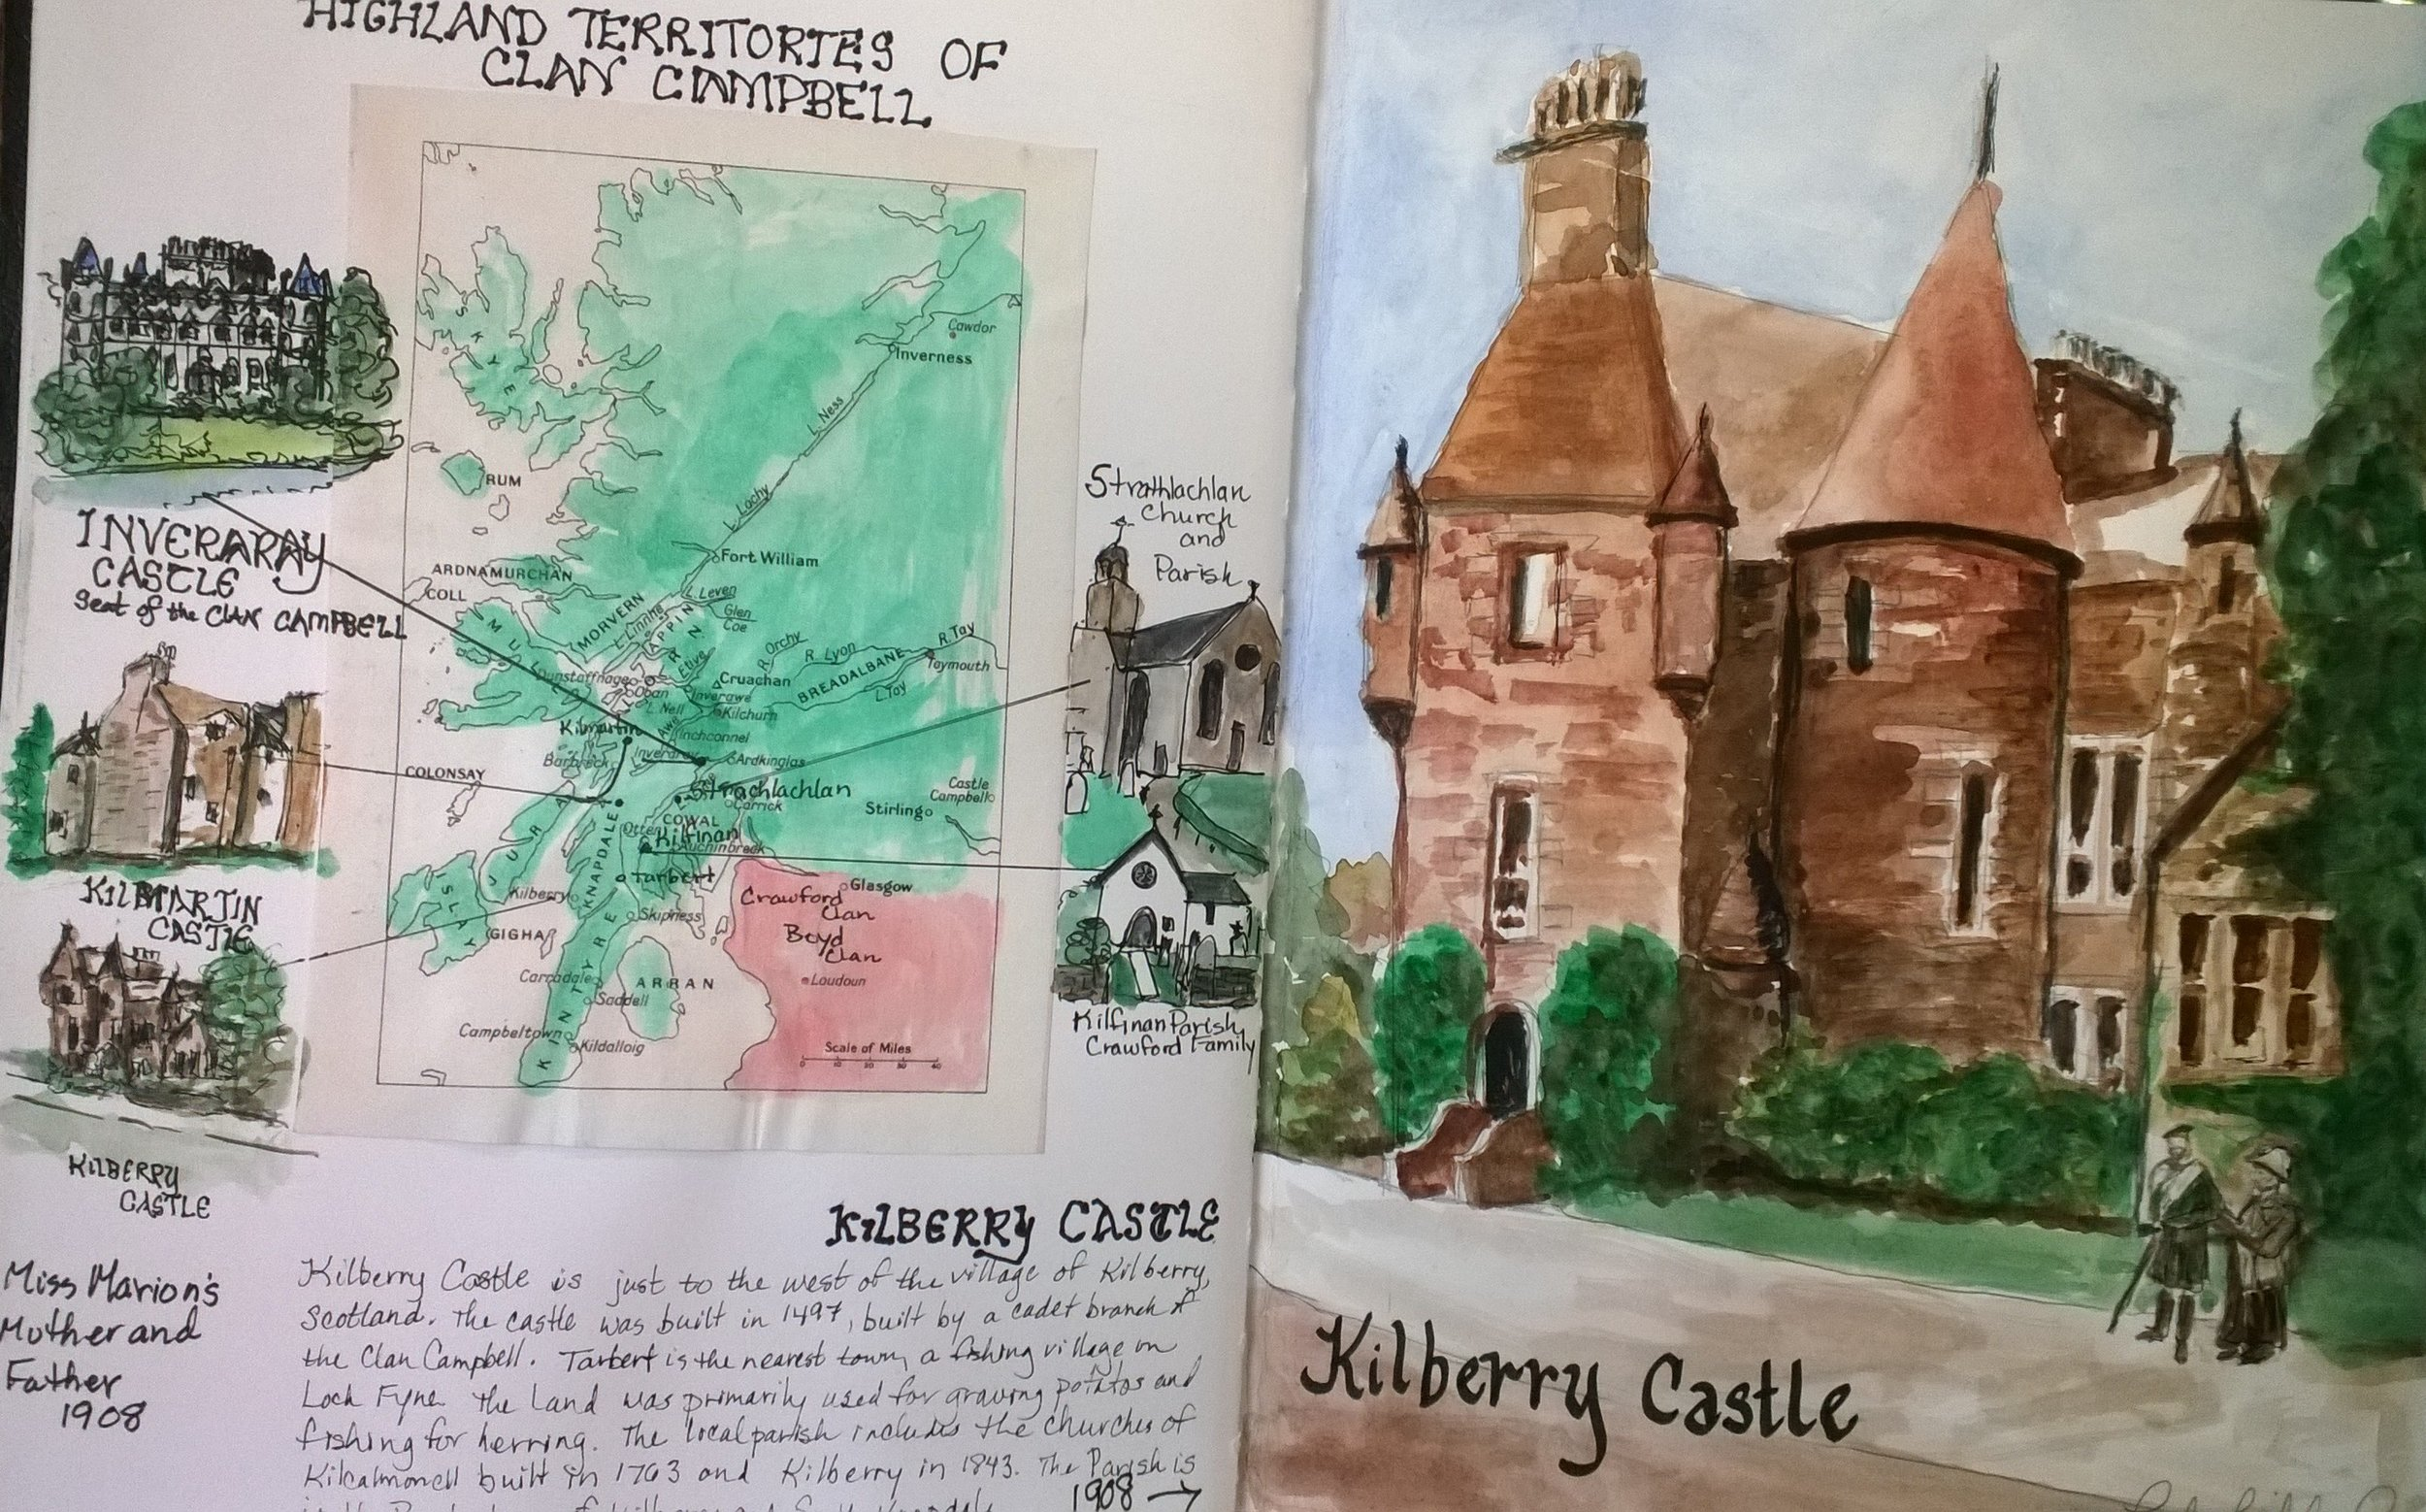 As I prepared for the trip, I starting researching the places we would visit in Scotland, with great excitement, and joined Ancestry.com.  Each name I explored led me to something else that led me to read an article about Miss Marion Campbell of Kilberry, Argyll, Scotland.  She was an authoress and archaeologist who's life work was invaluable to locating many of the great ancient markers and stones in Scotland.  I found this image of Kilberry Castle on the internet, which I painted in my sketchbook, not yet knowing how important this place was in the history of my family!